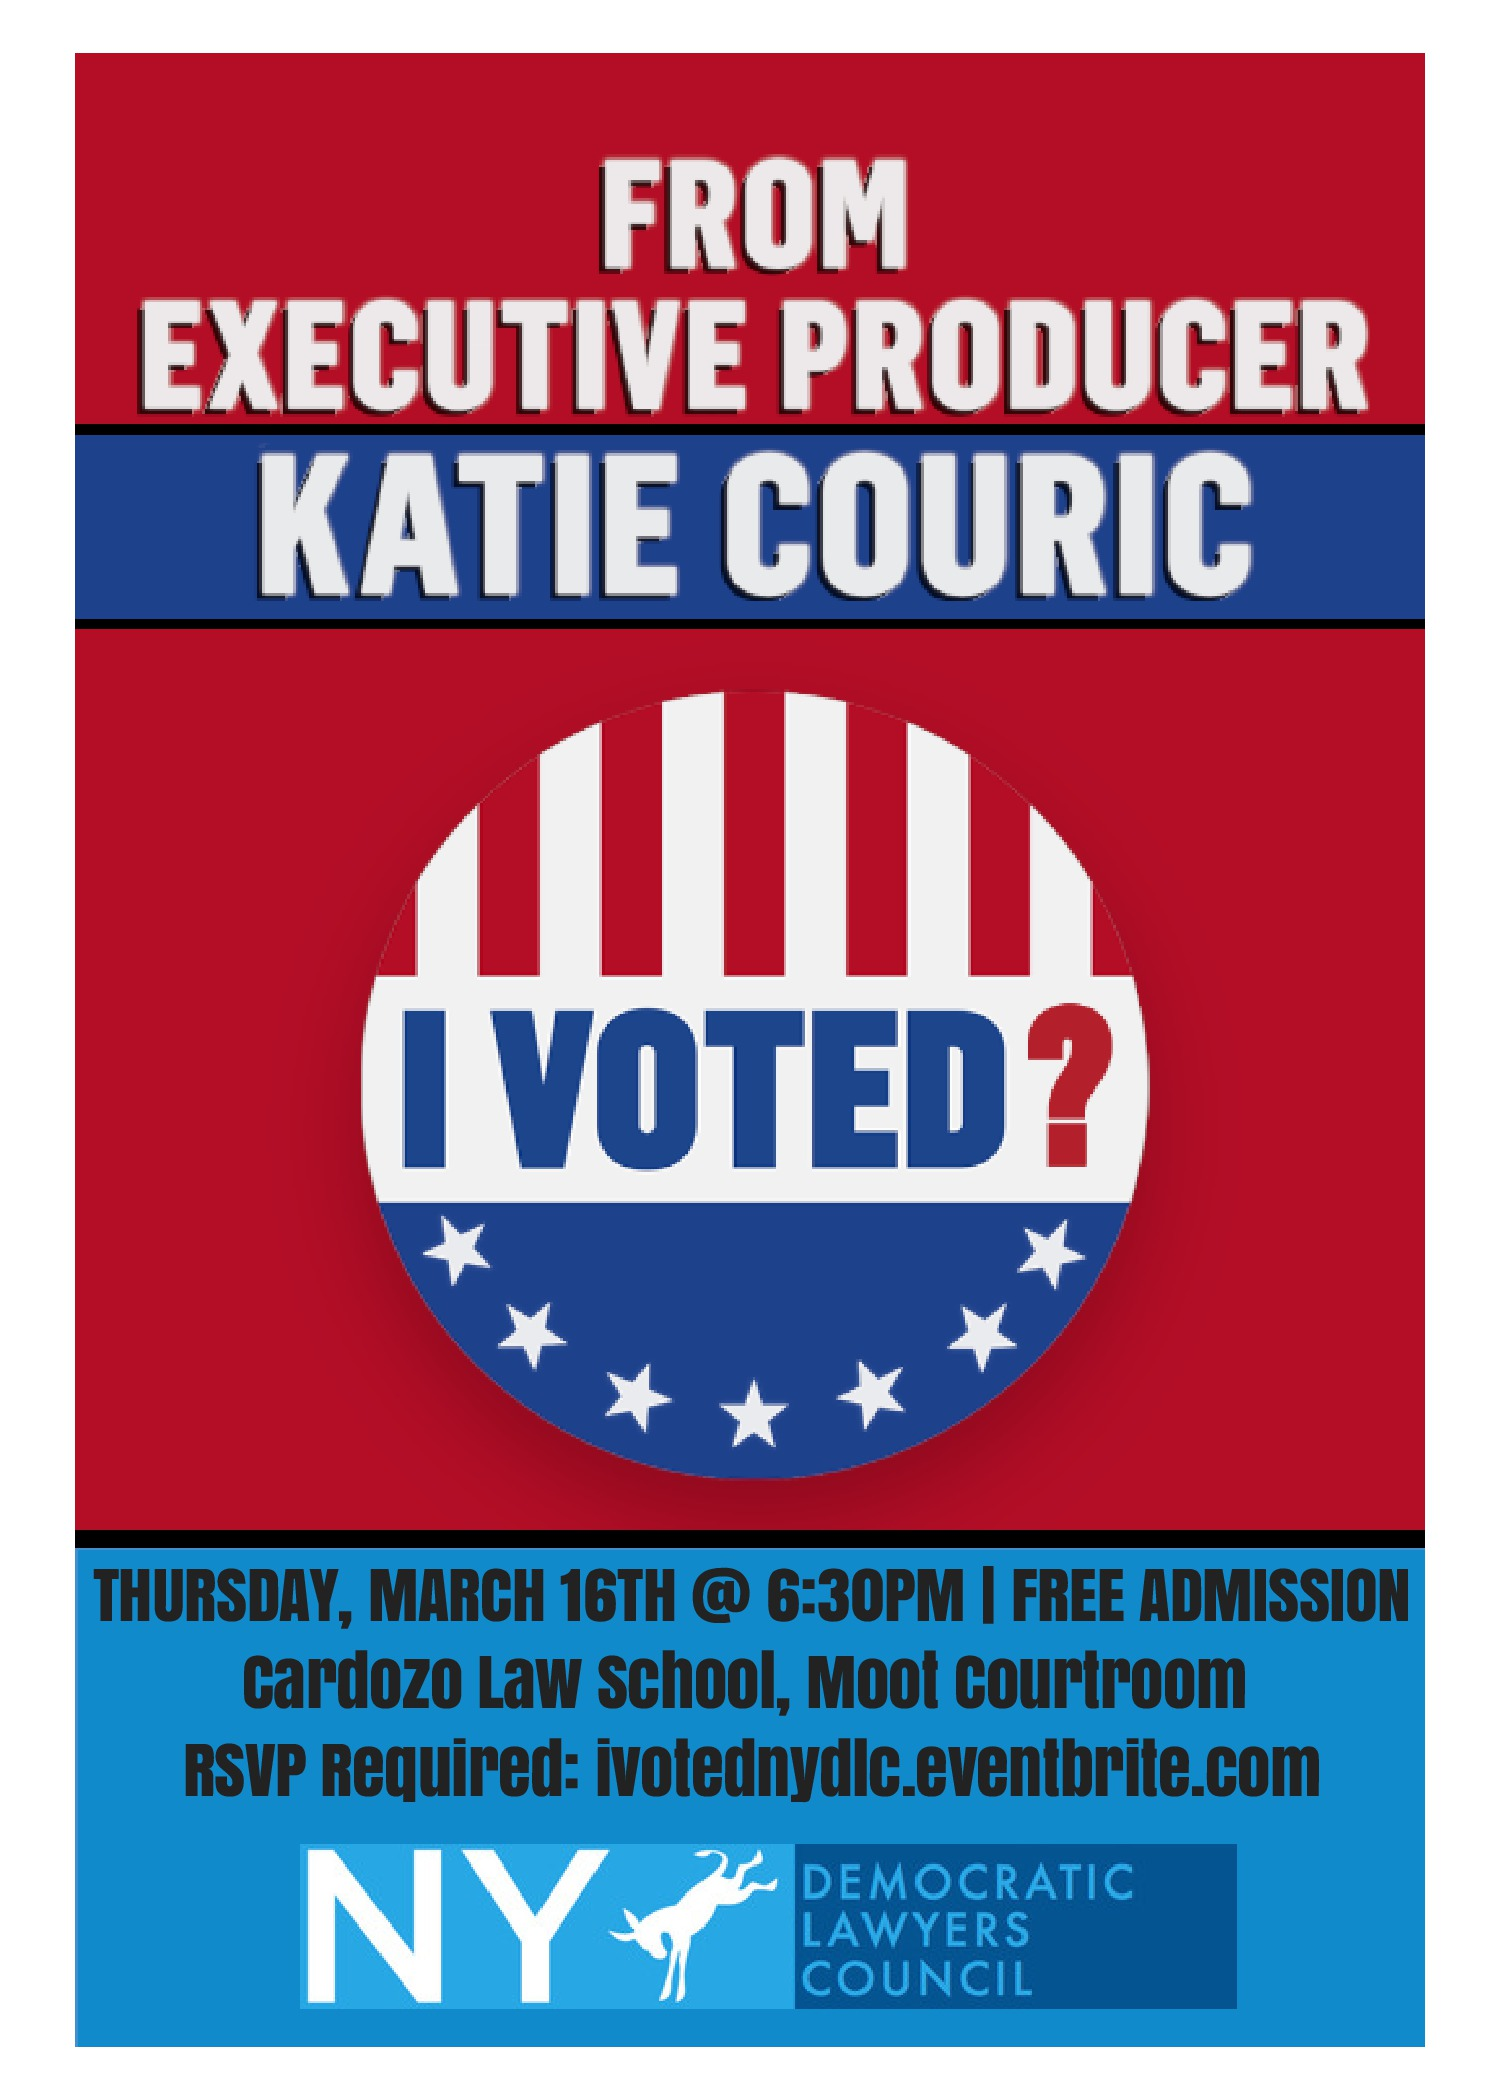 3/16: I Voted? NYDLC flyer